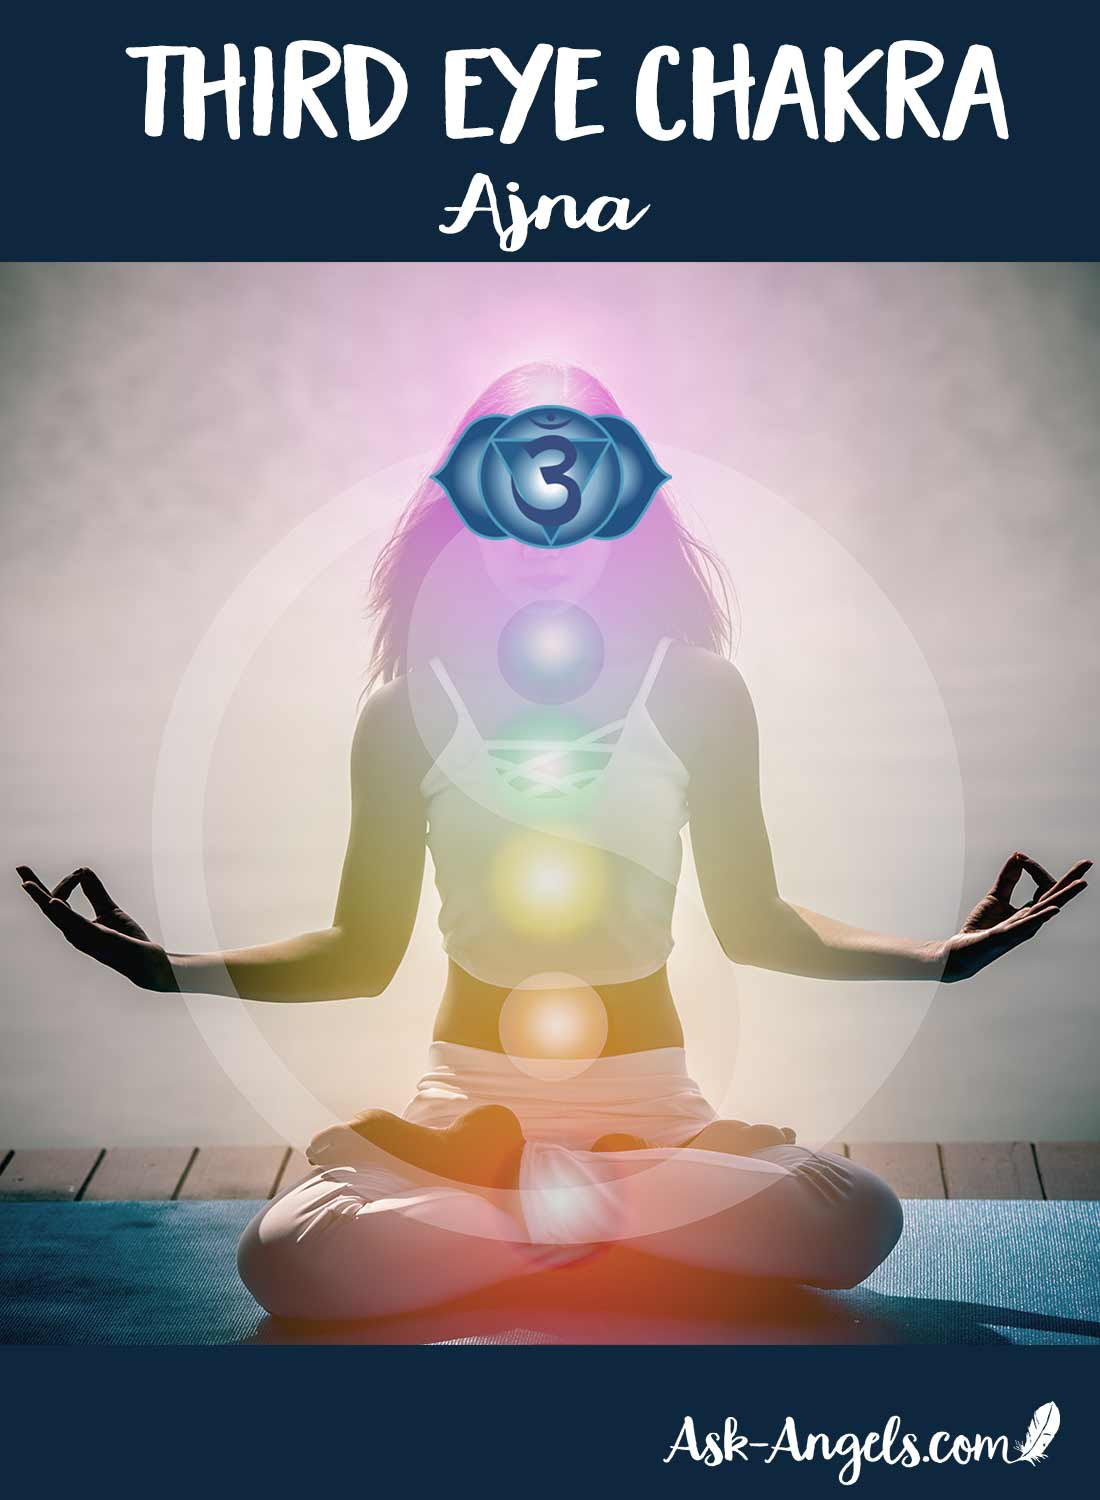 The third eye chakra connects you to the higher realms of intuition. It is a key anchor point for your Divine I Am presence along with an anchor point for etheric life force energy.